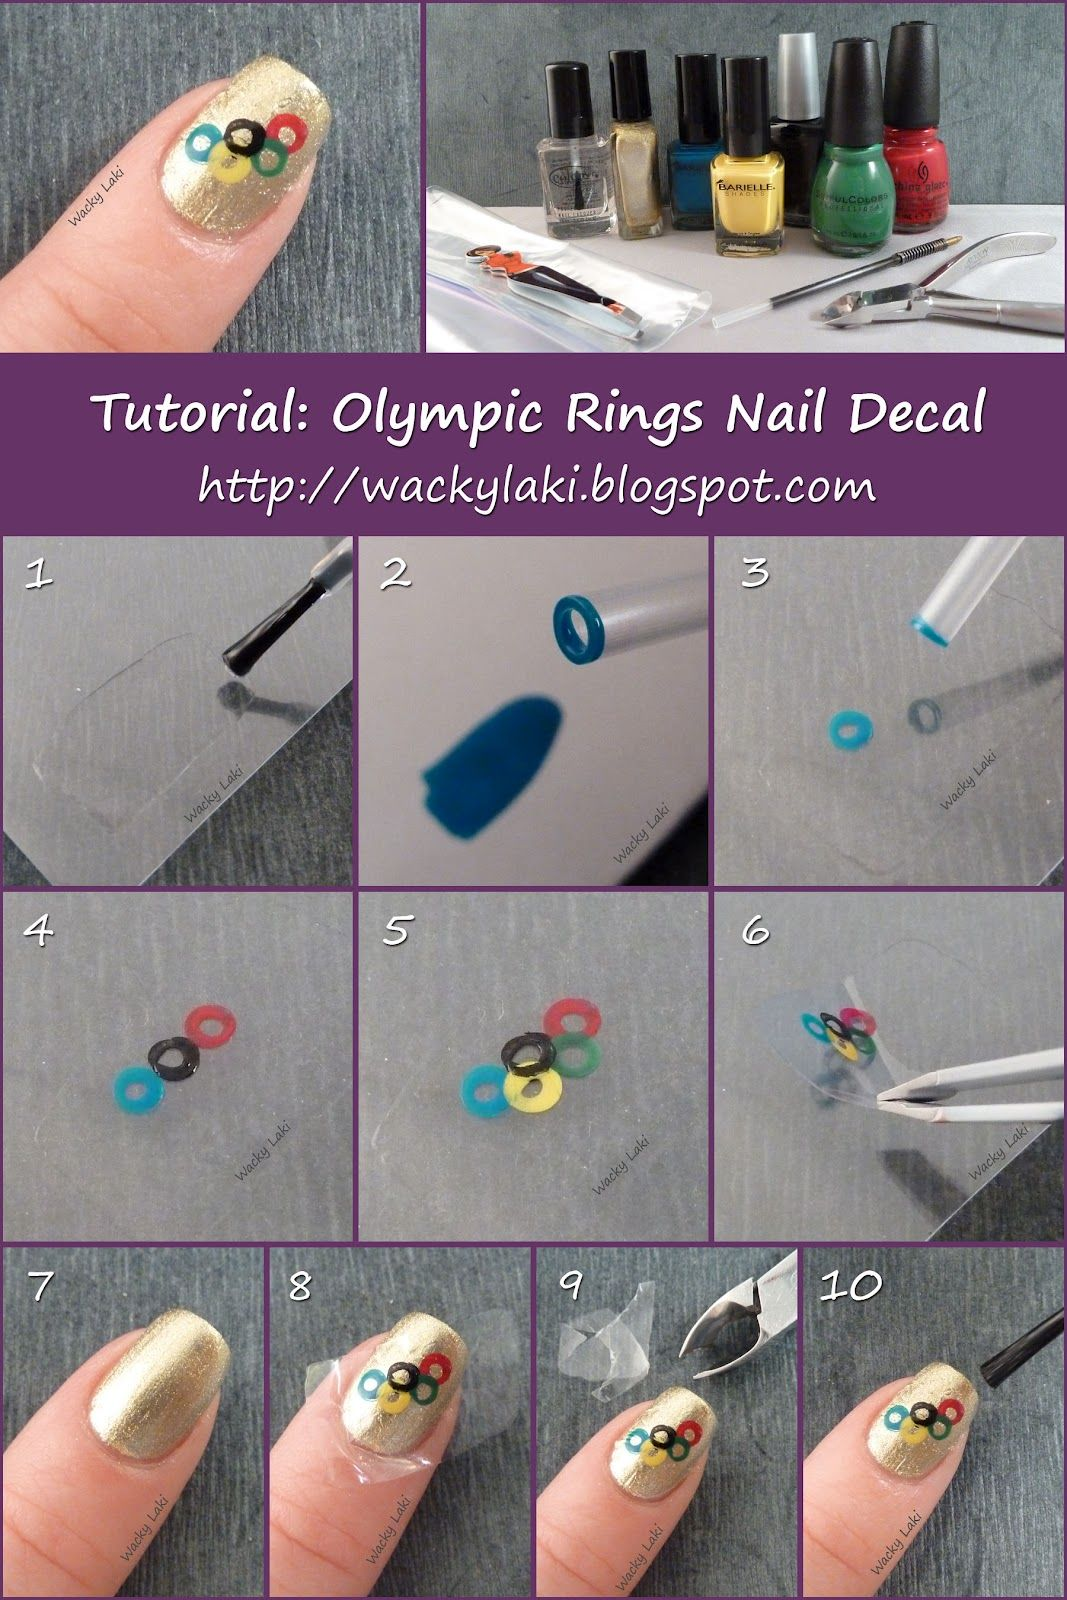 Olympic Rings Nail Decal\' by Anutka. Good instructions on creating ...